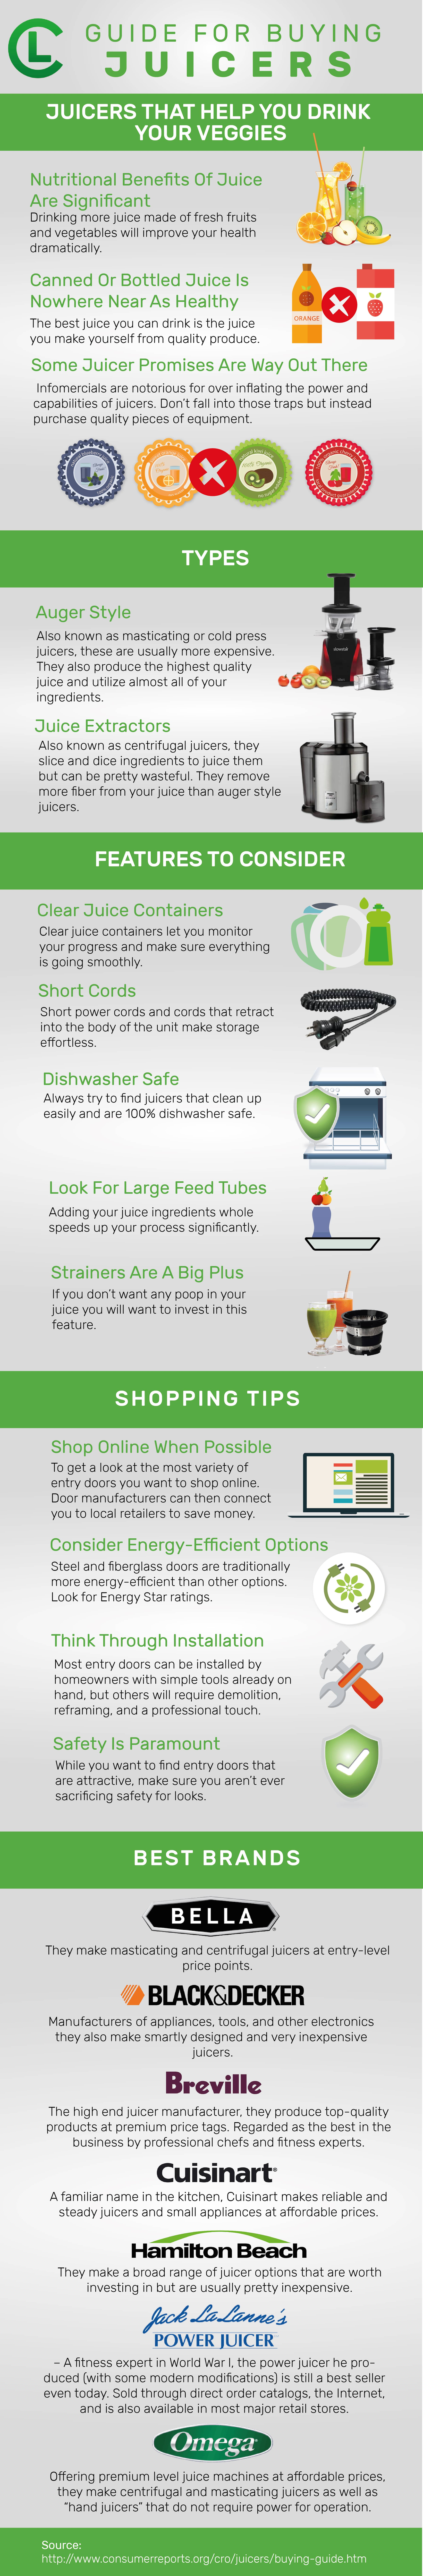 guide for buying juicers infographic